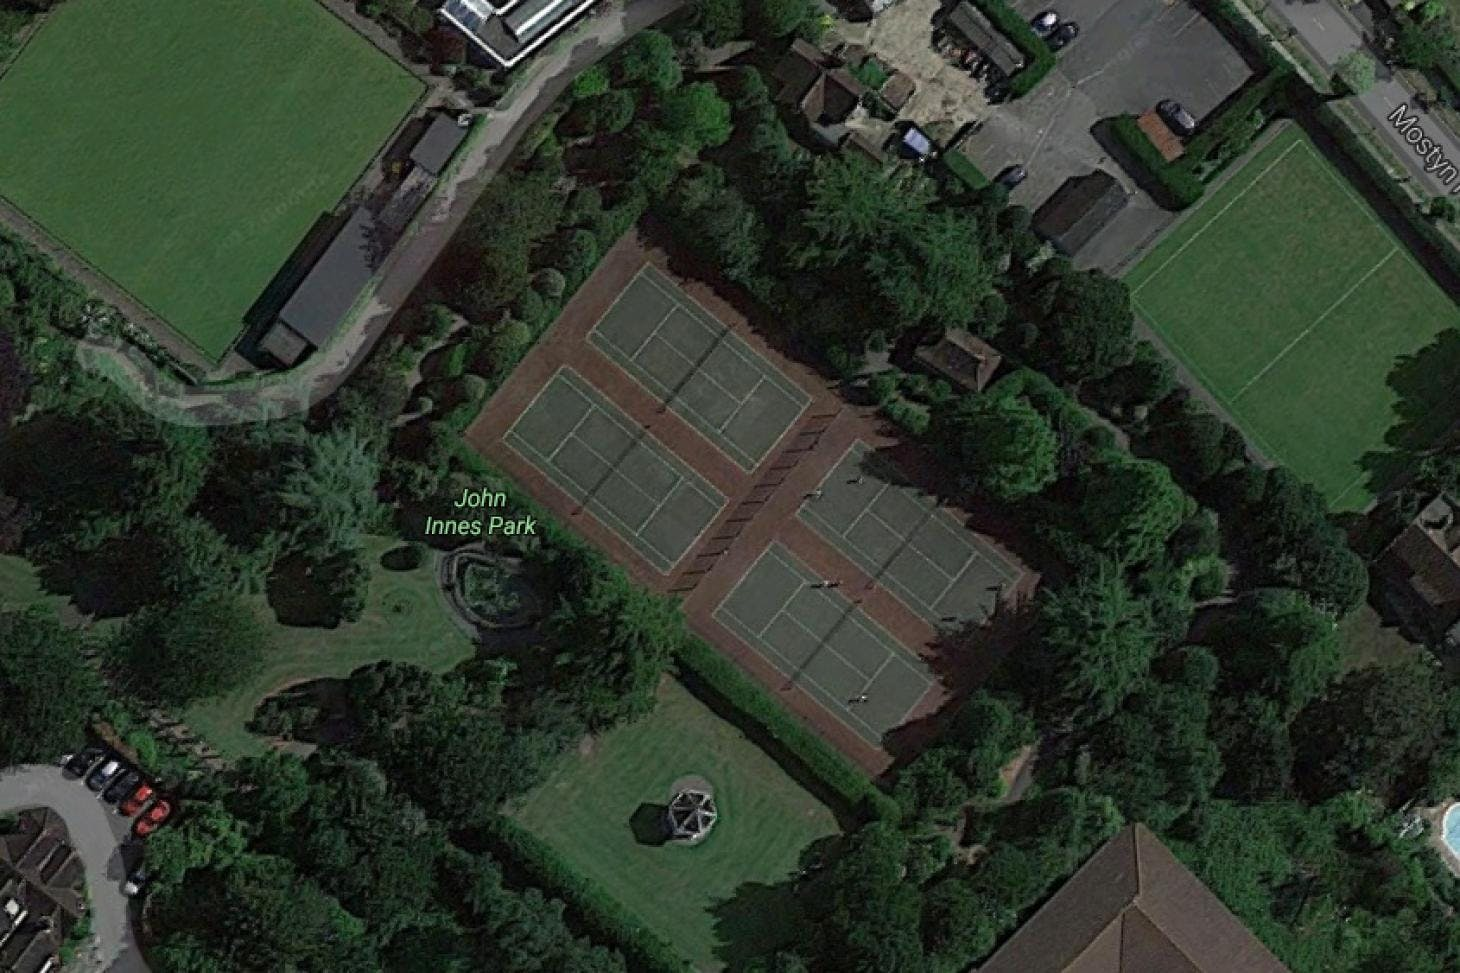 John Innes Park Outdoor | Hard (macadam) tennis court